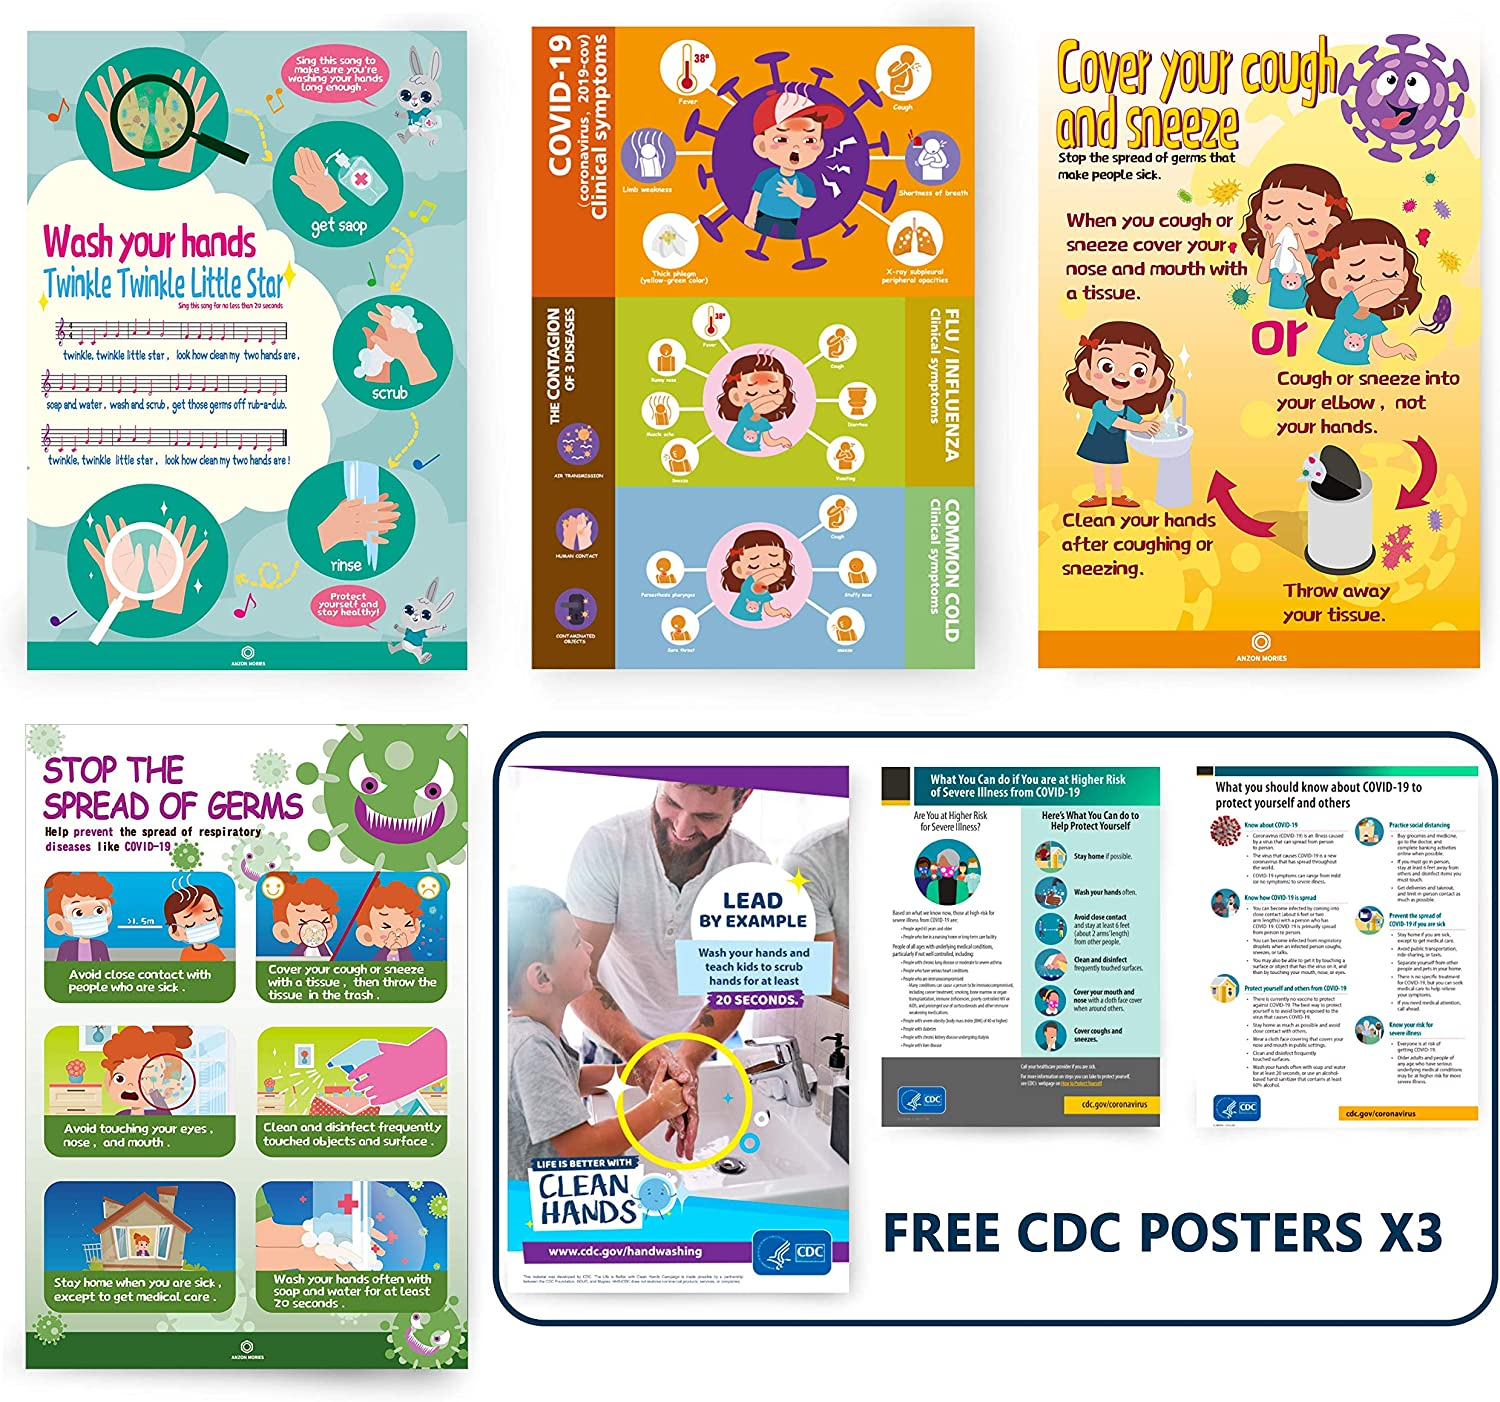 """ANZON MORIES Posters 4 Packs, Safety Reminders for Kids, Hand Washing Wall Posters 11""""x 22"""" for Workplace, School"""